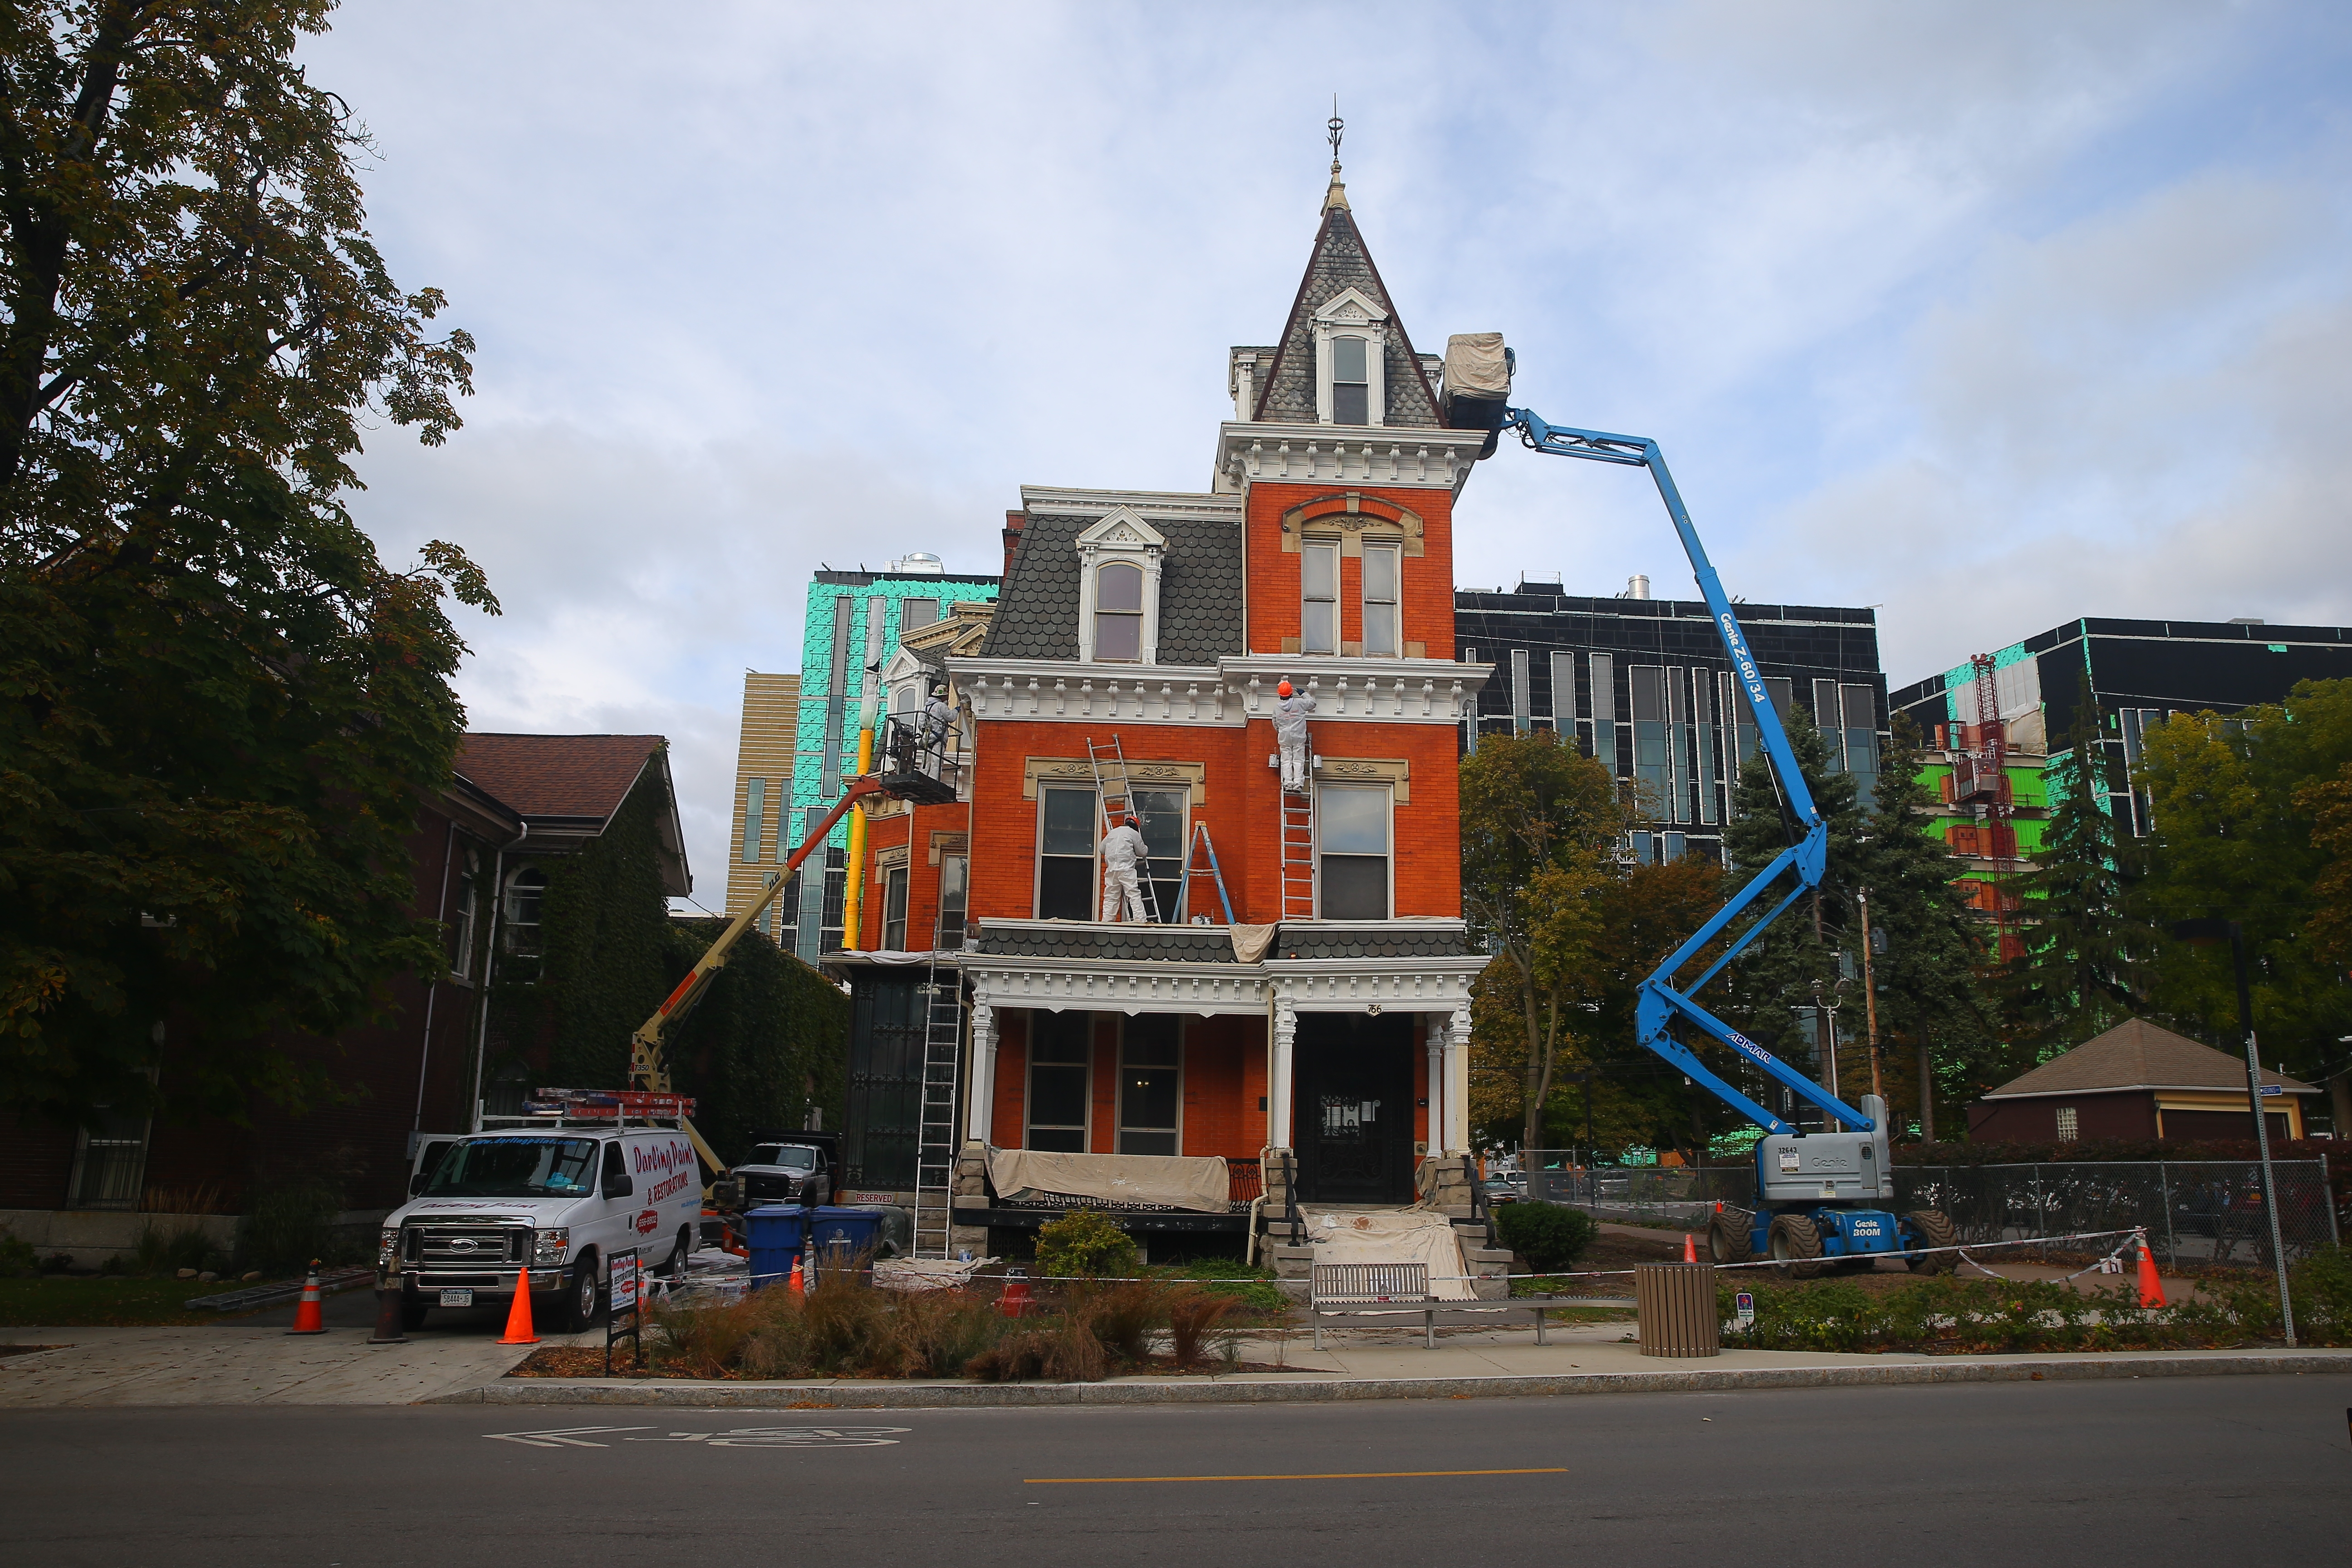 Workers paint trim on 766 Ellicott Street, shown here in October. (John Hickey/Buffalo News file photo)